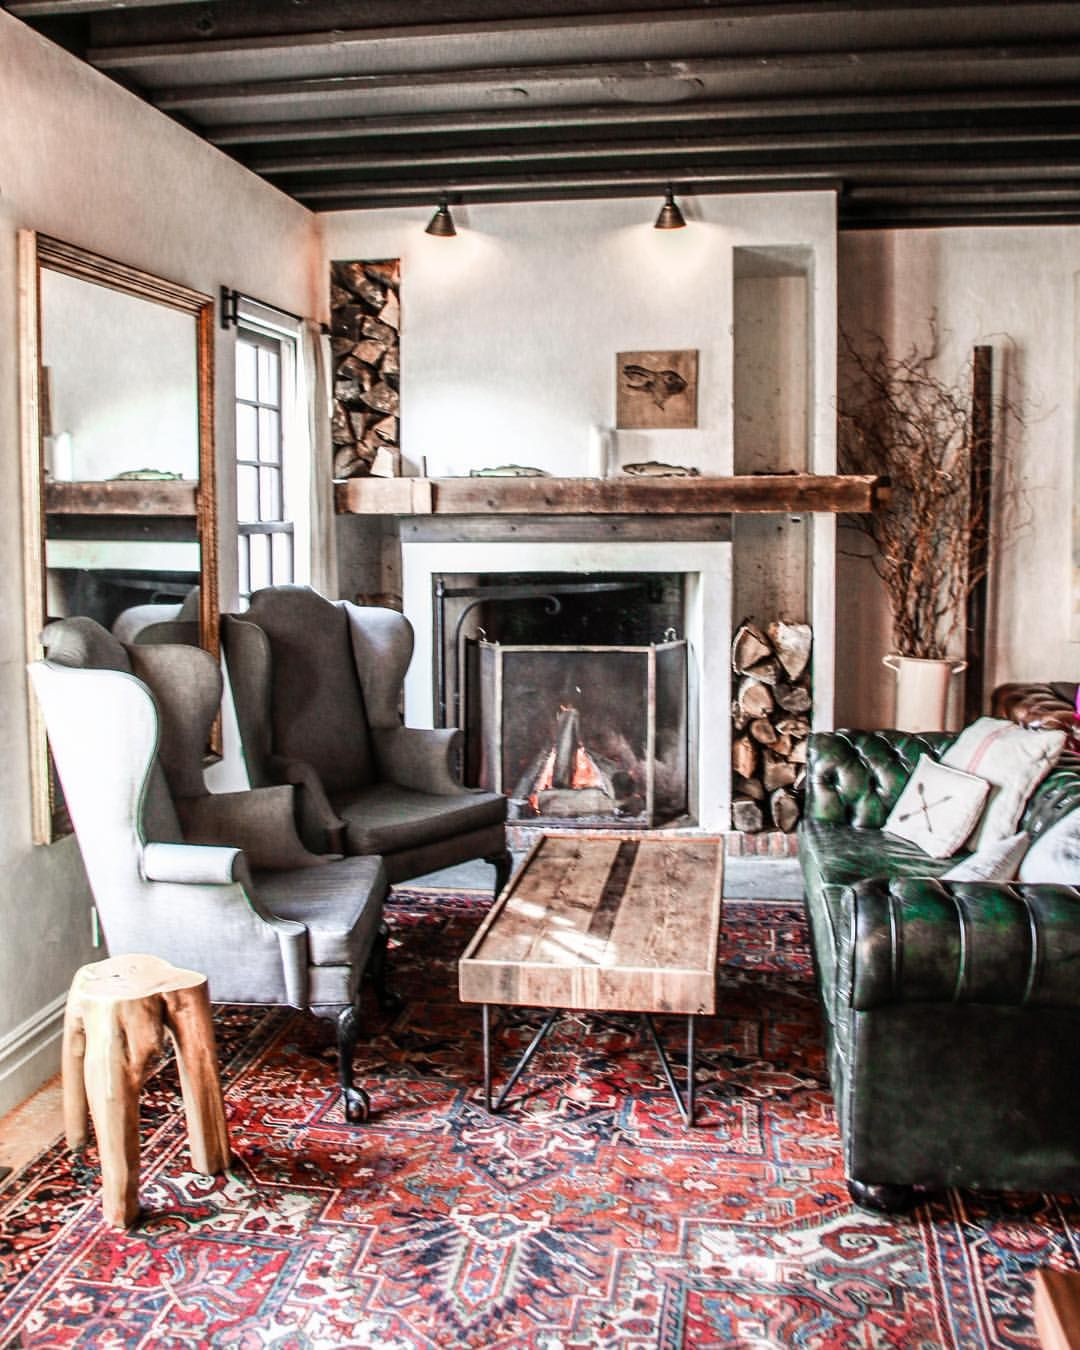 """a styling & creative company on Instagram """"cozy cabin"""